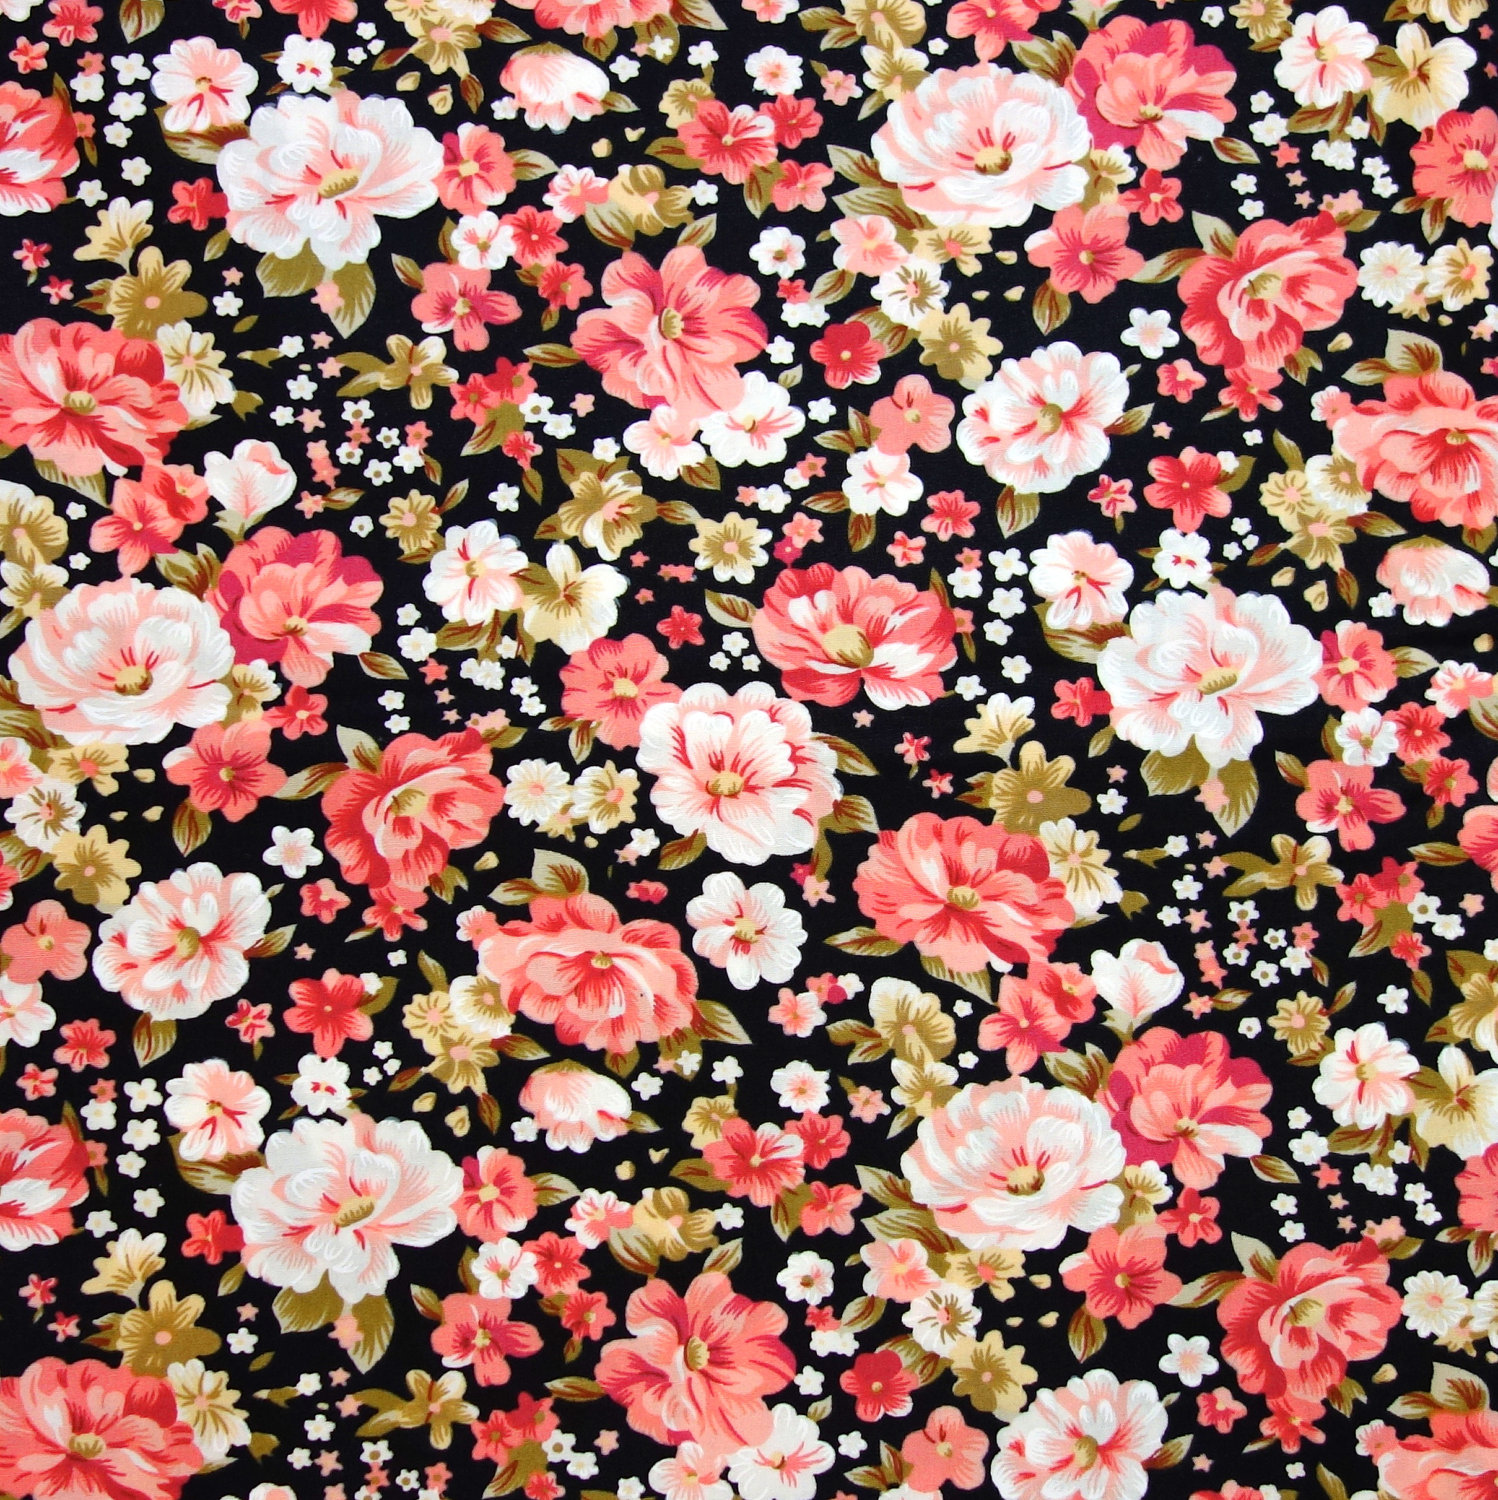 1000+ images about Floral Print | Black with Bright on Pinterest